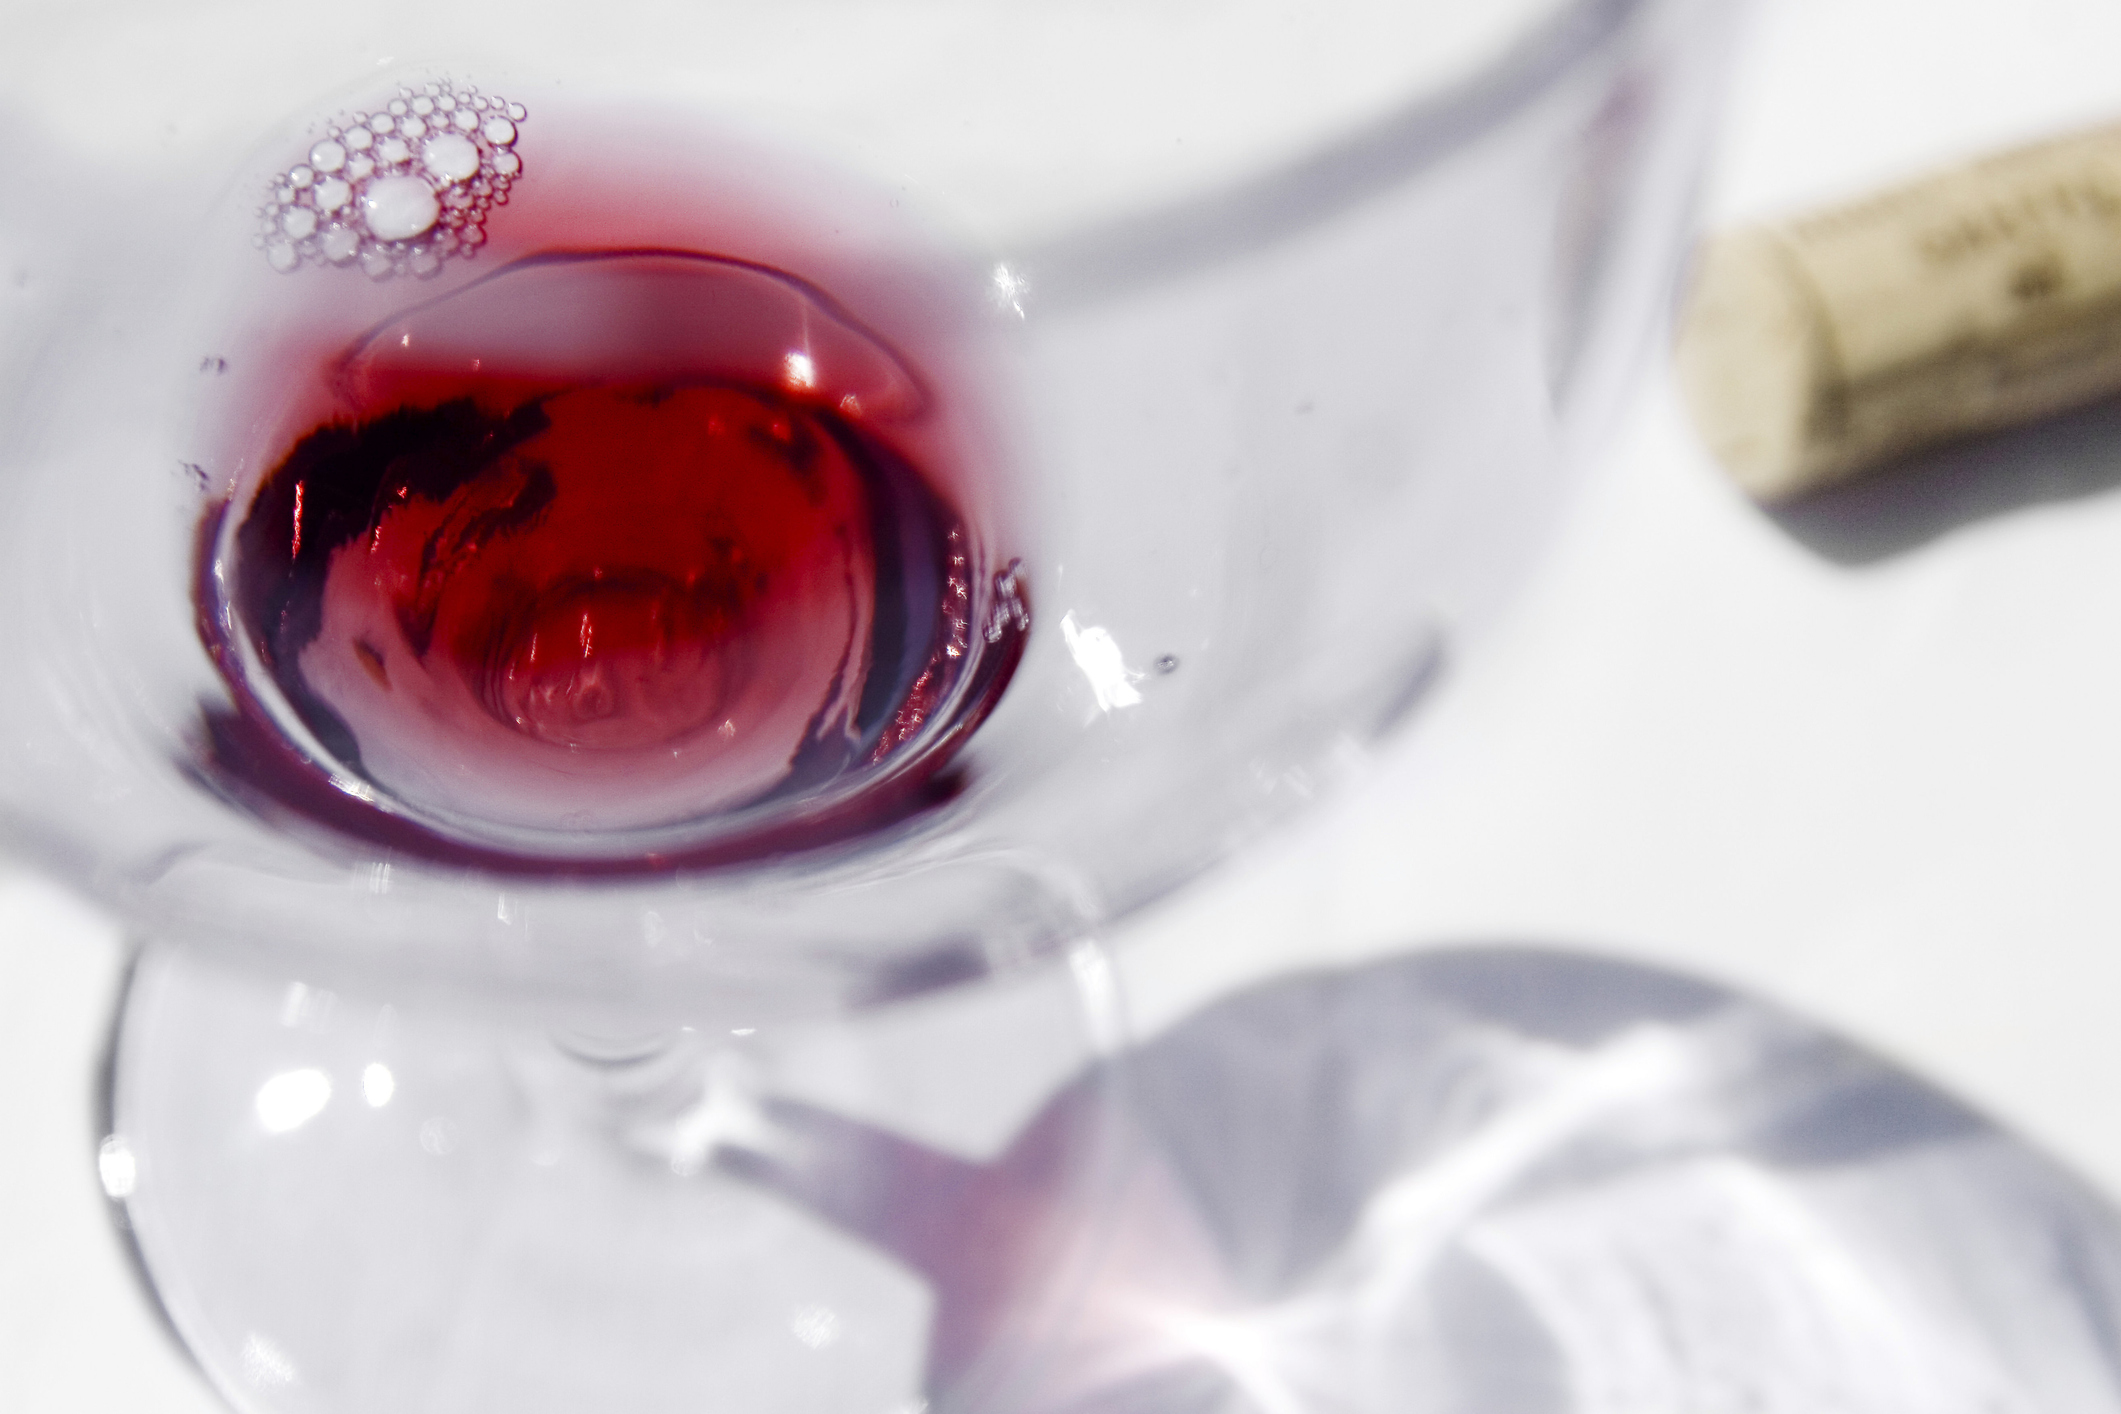 What does corked wine mean?